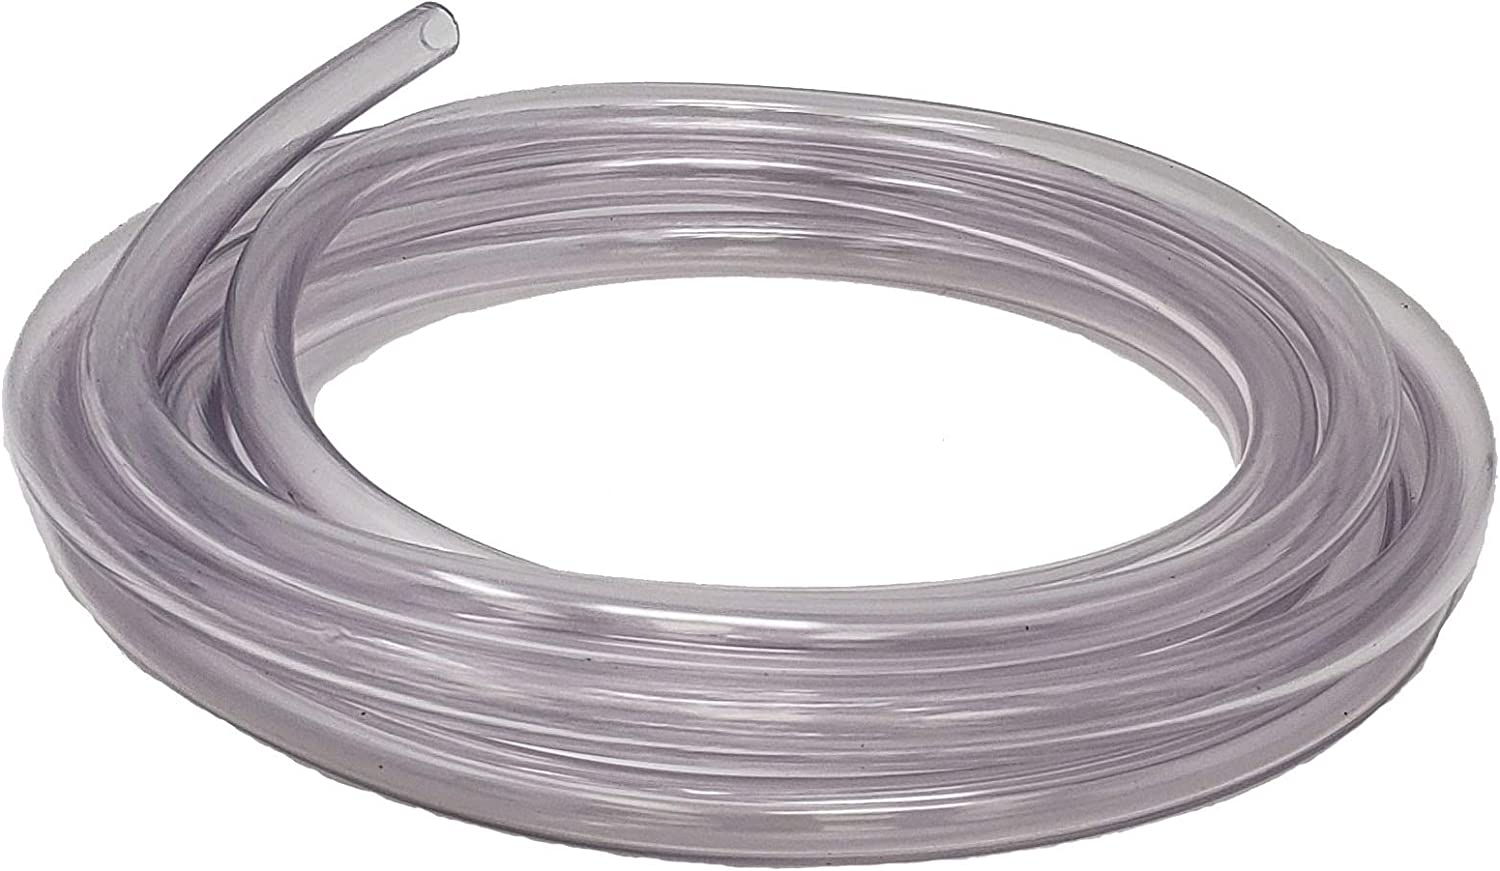 Sealproof Unreinforced PVC Food Grade Clear Vinyl Tubing, 5/16-Inch ID x 7/16-Inch OD, 10-Ft, 100% American Made